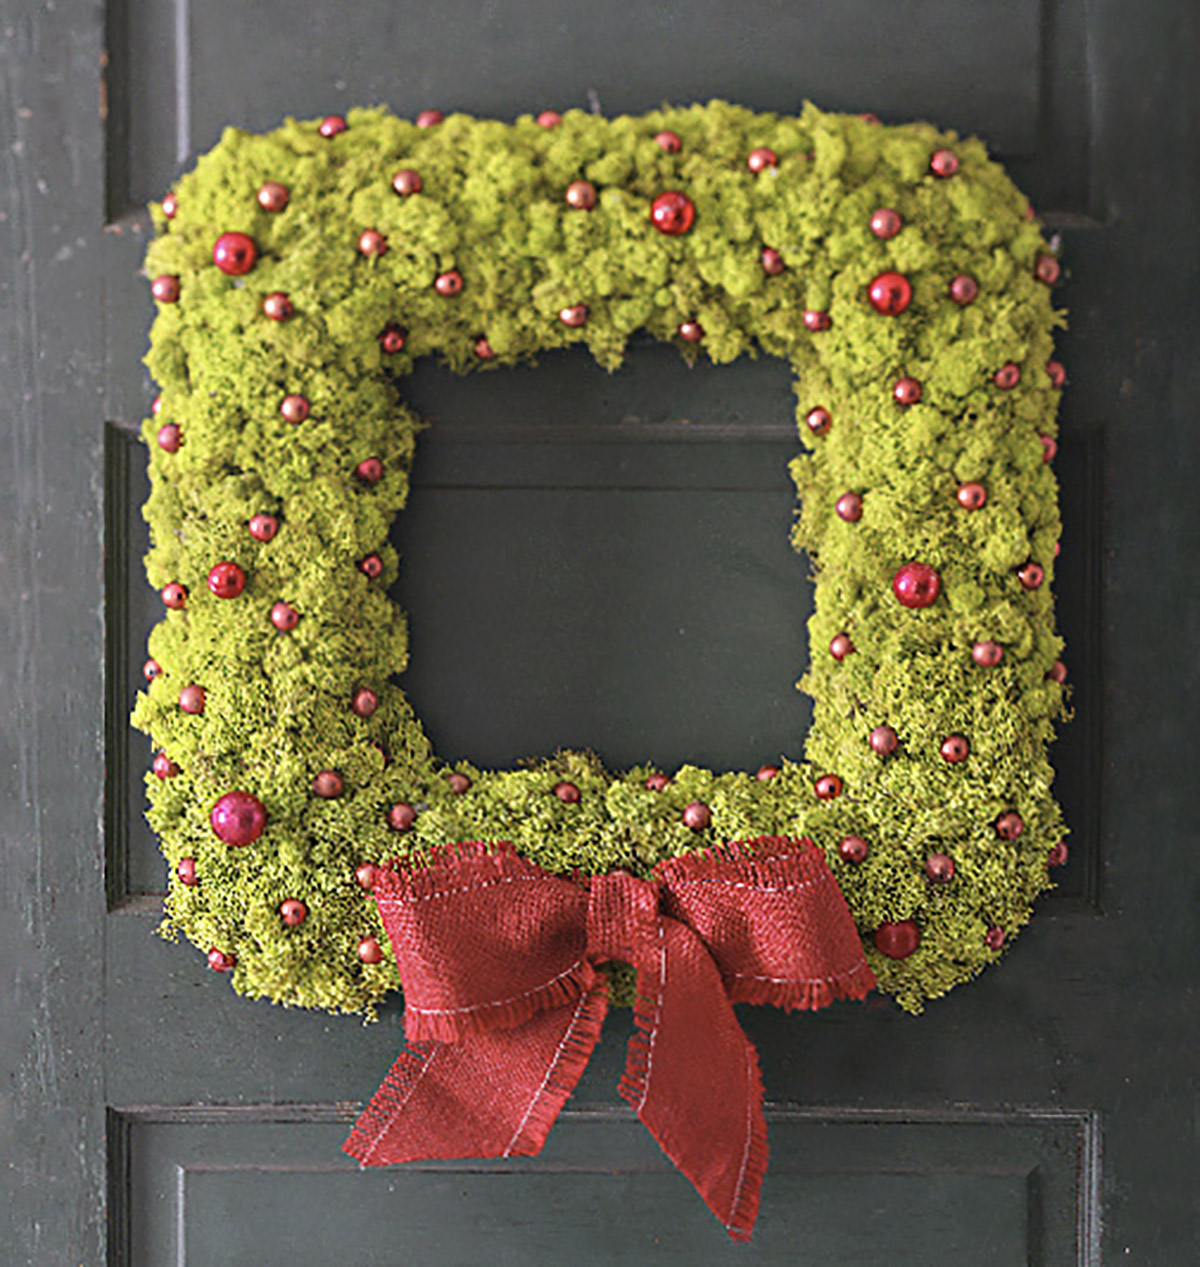 How to Make a Square Reindeer Moss Wreath for Christmas